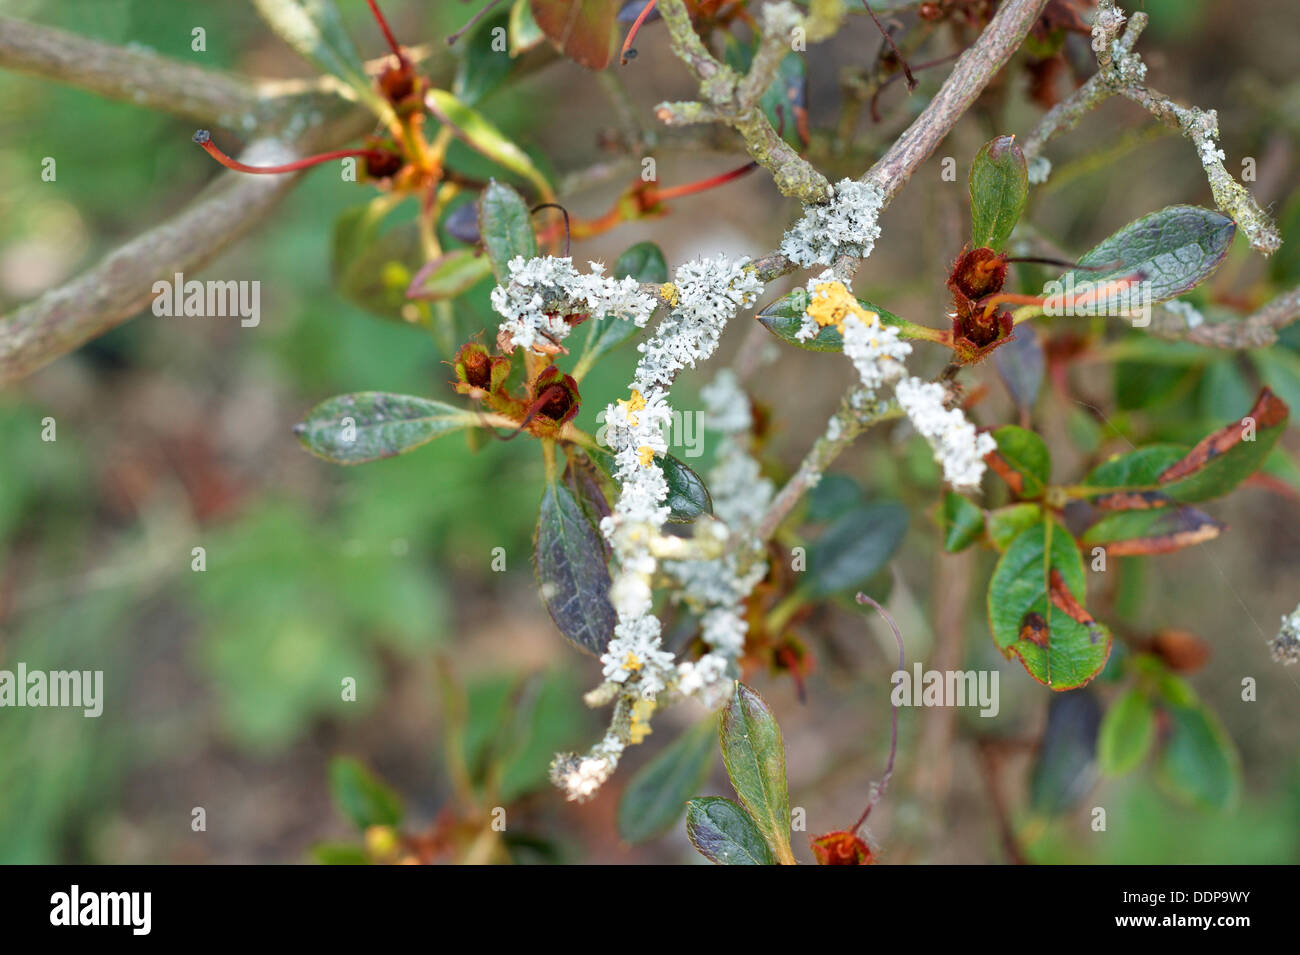 Azalea shrub with stems & leaves covered in fungus & disease - Stock Image